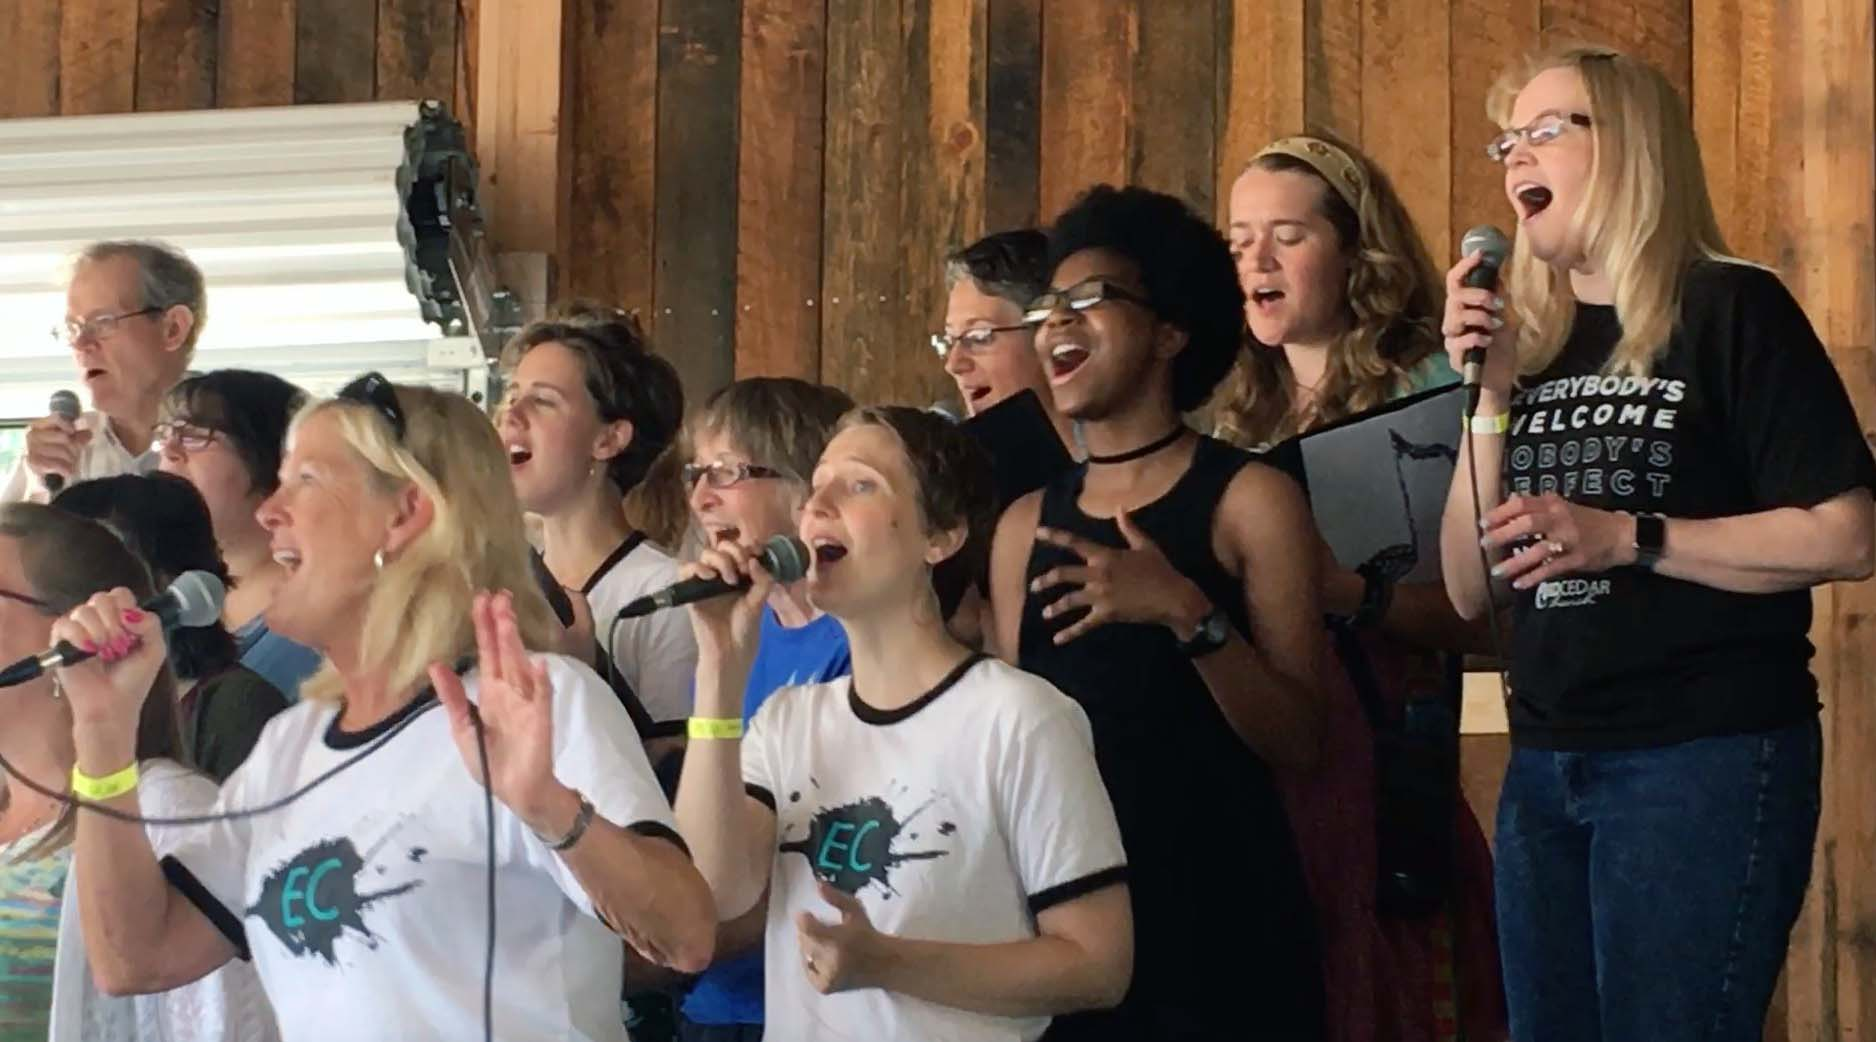 Collective Choir performing at One Fest at the Chippewa Fair Grounds 2018.